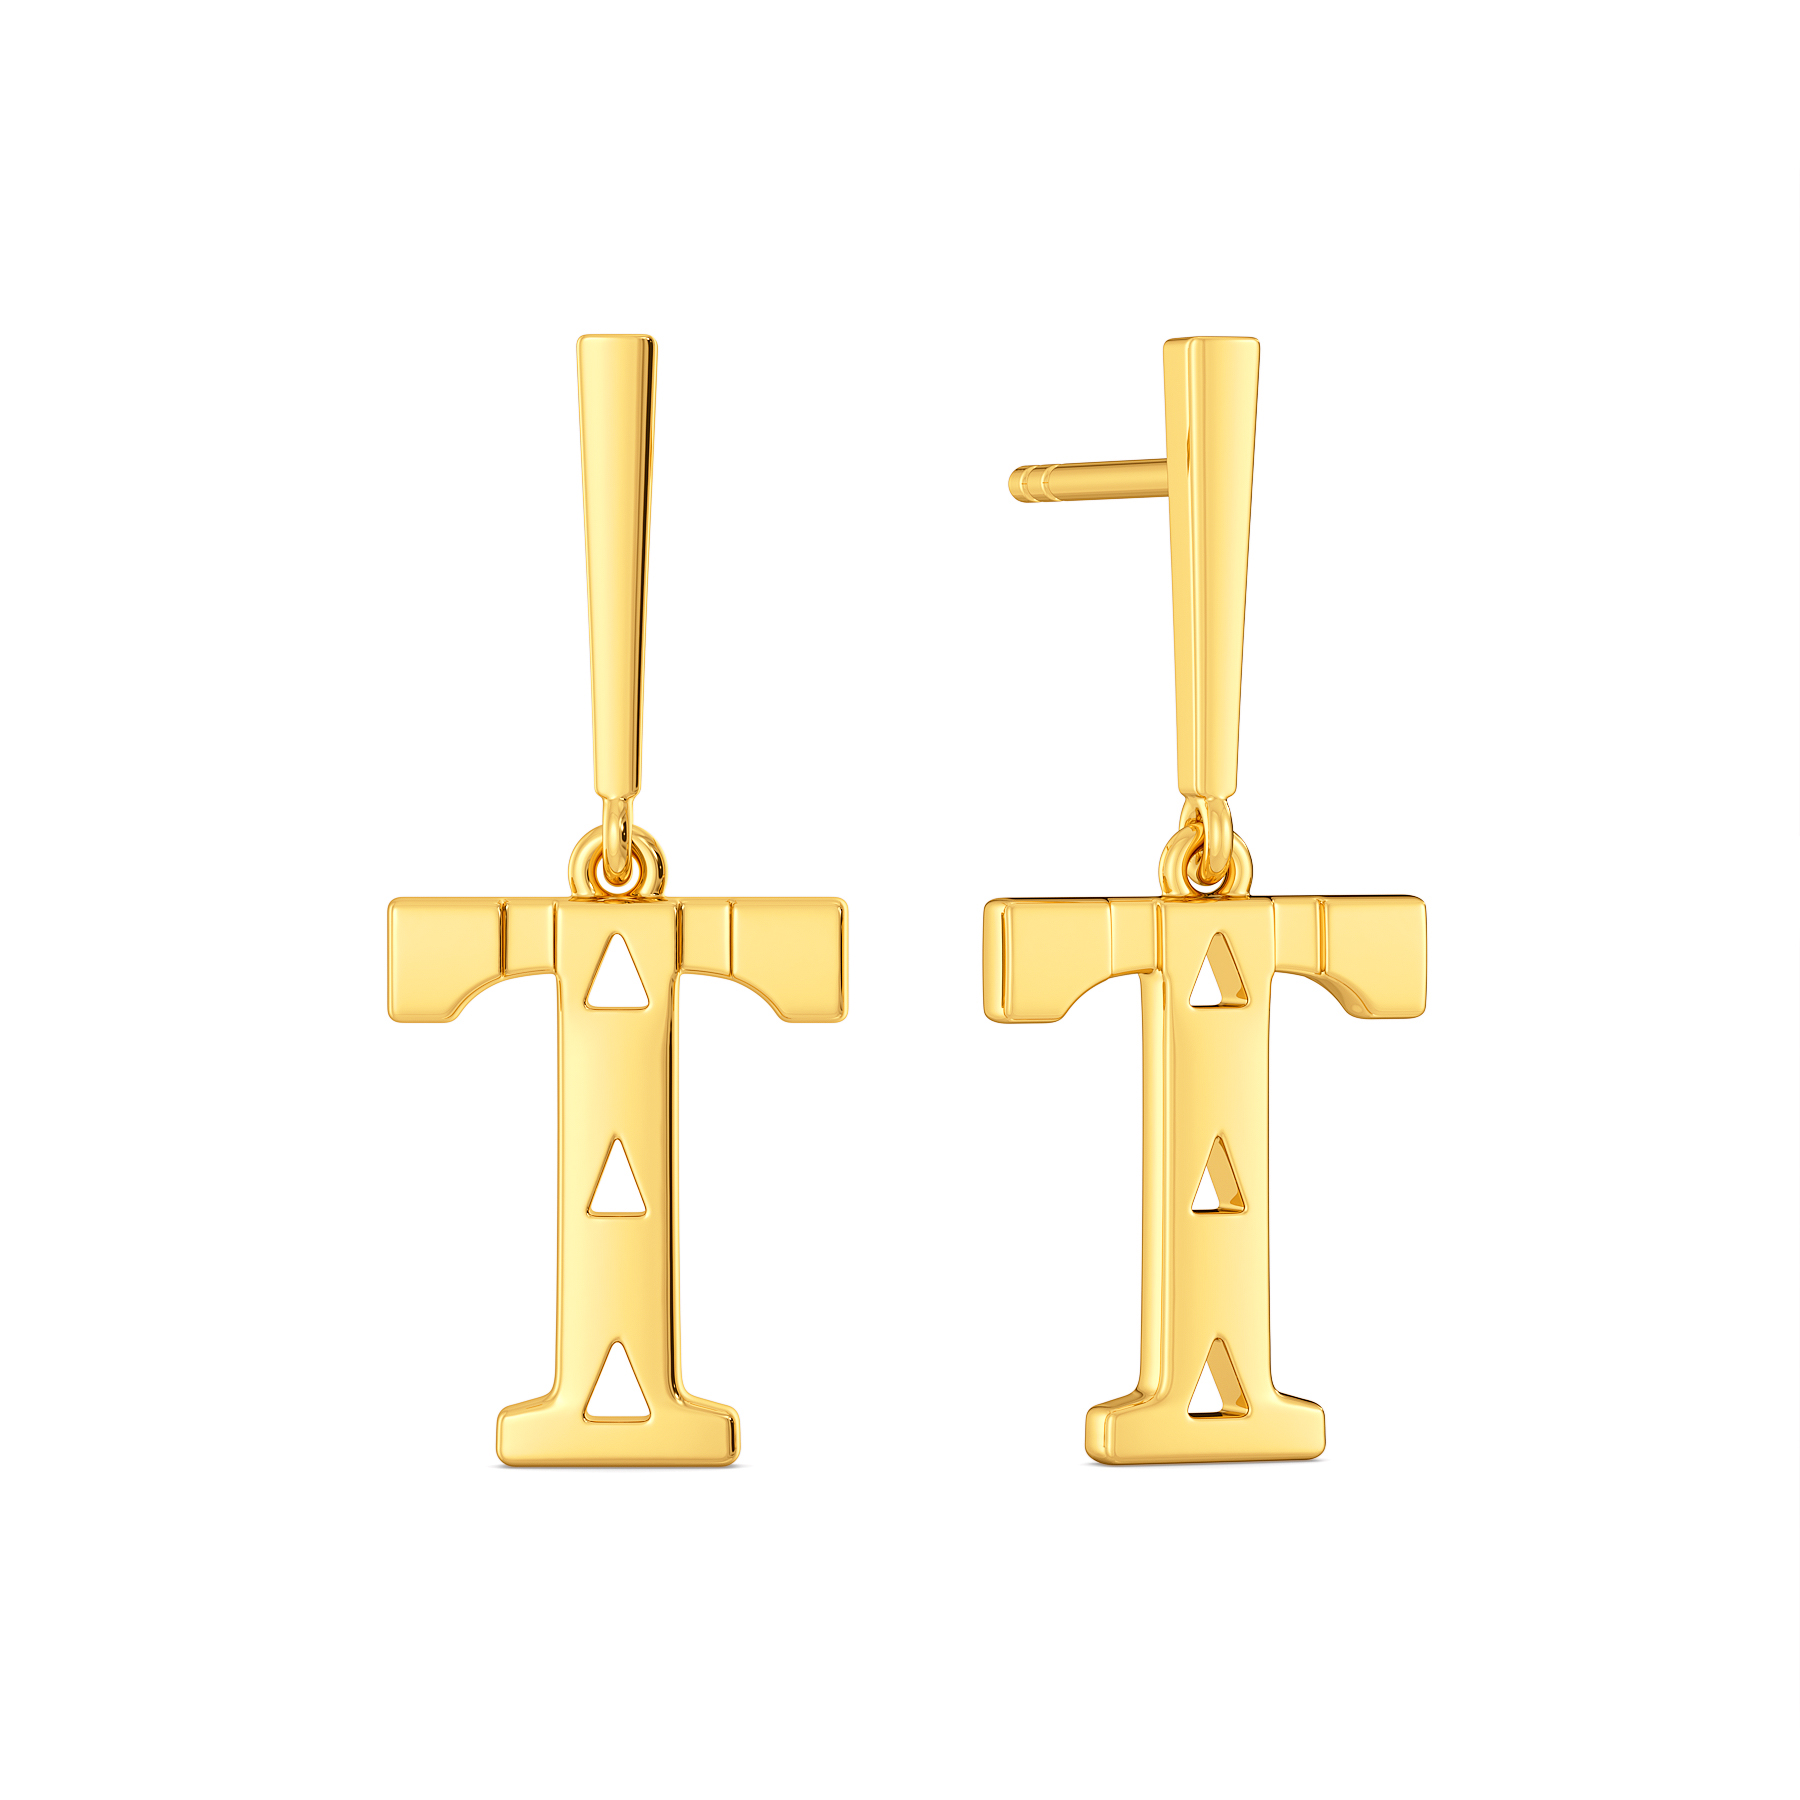 Tiger Stealth Gold Earrings